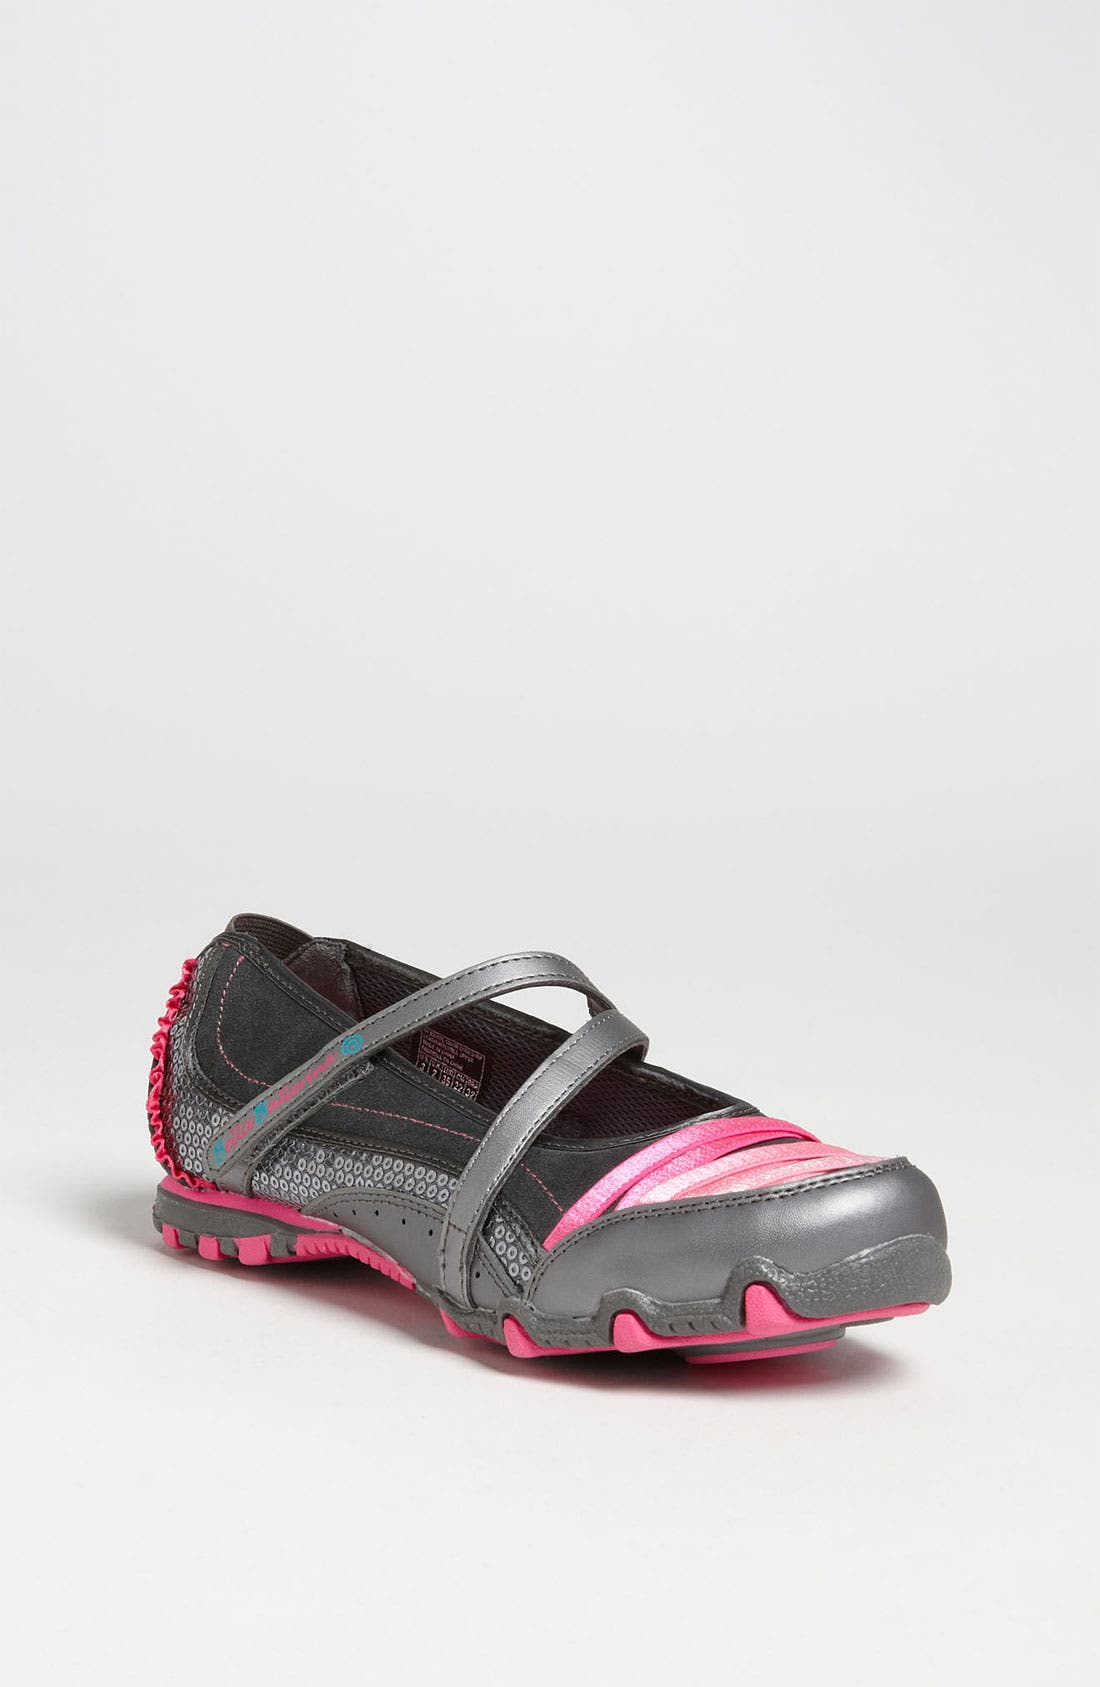 Alternate Image 1 Selected - SKECHERS 'Bella Ballerina - Prancy' Sneaker (Toddler & Little Kid)